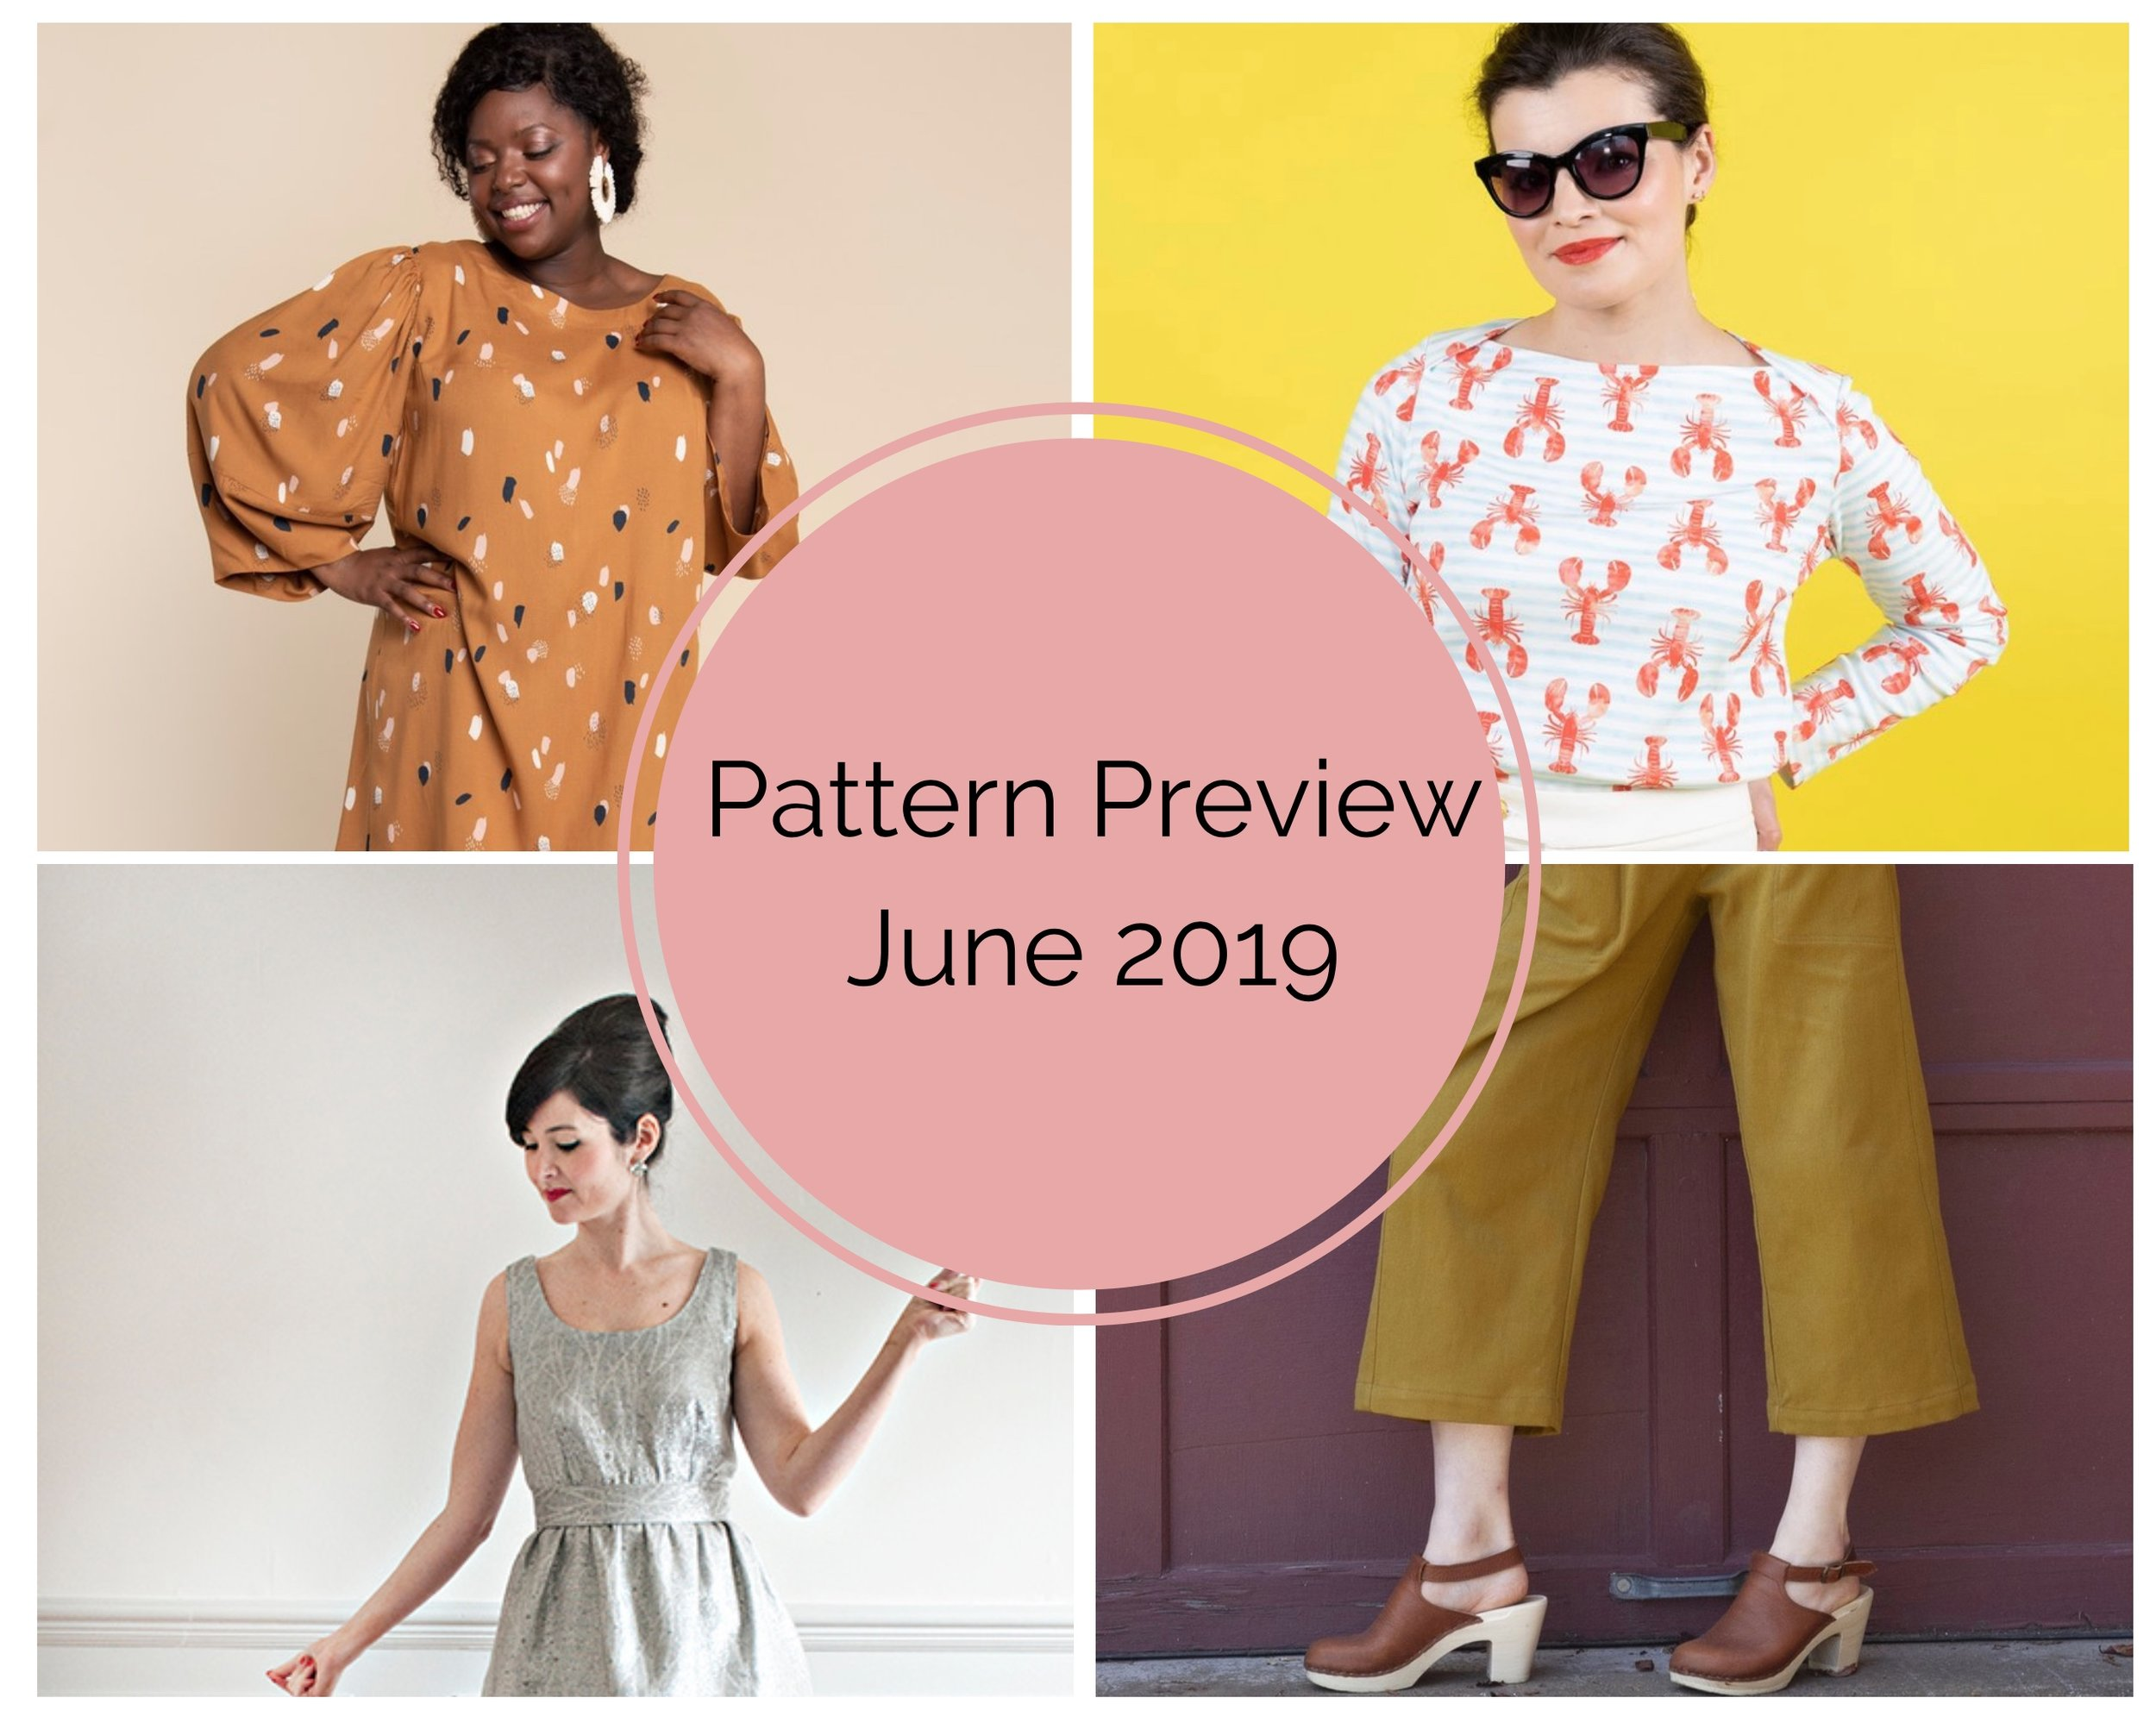 Pattern Preview June 2019